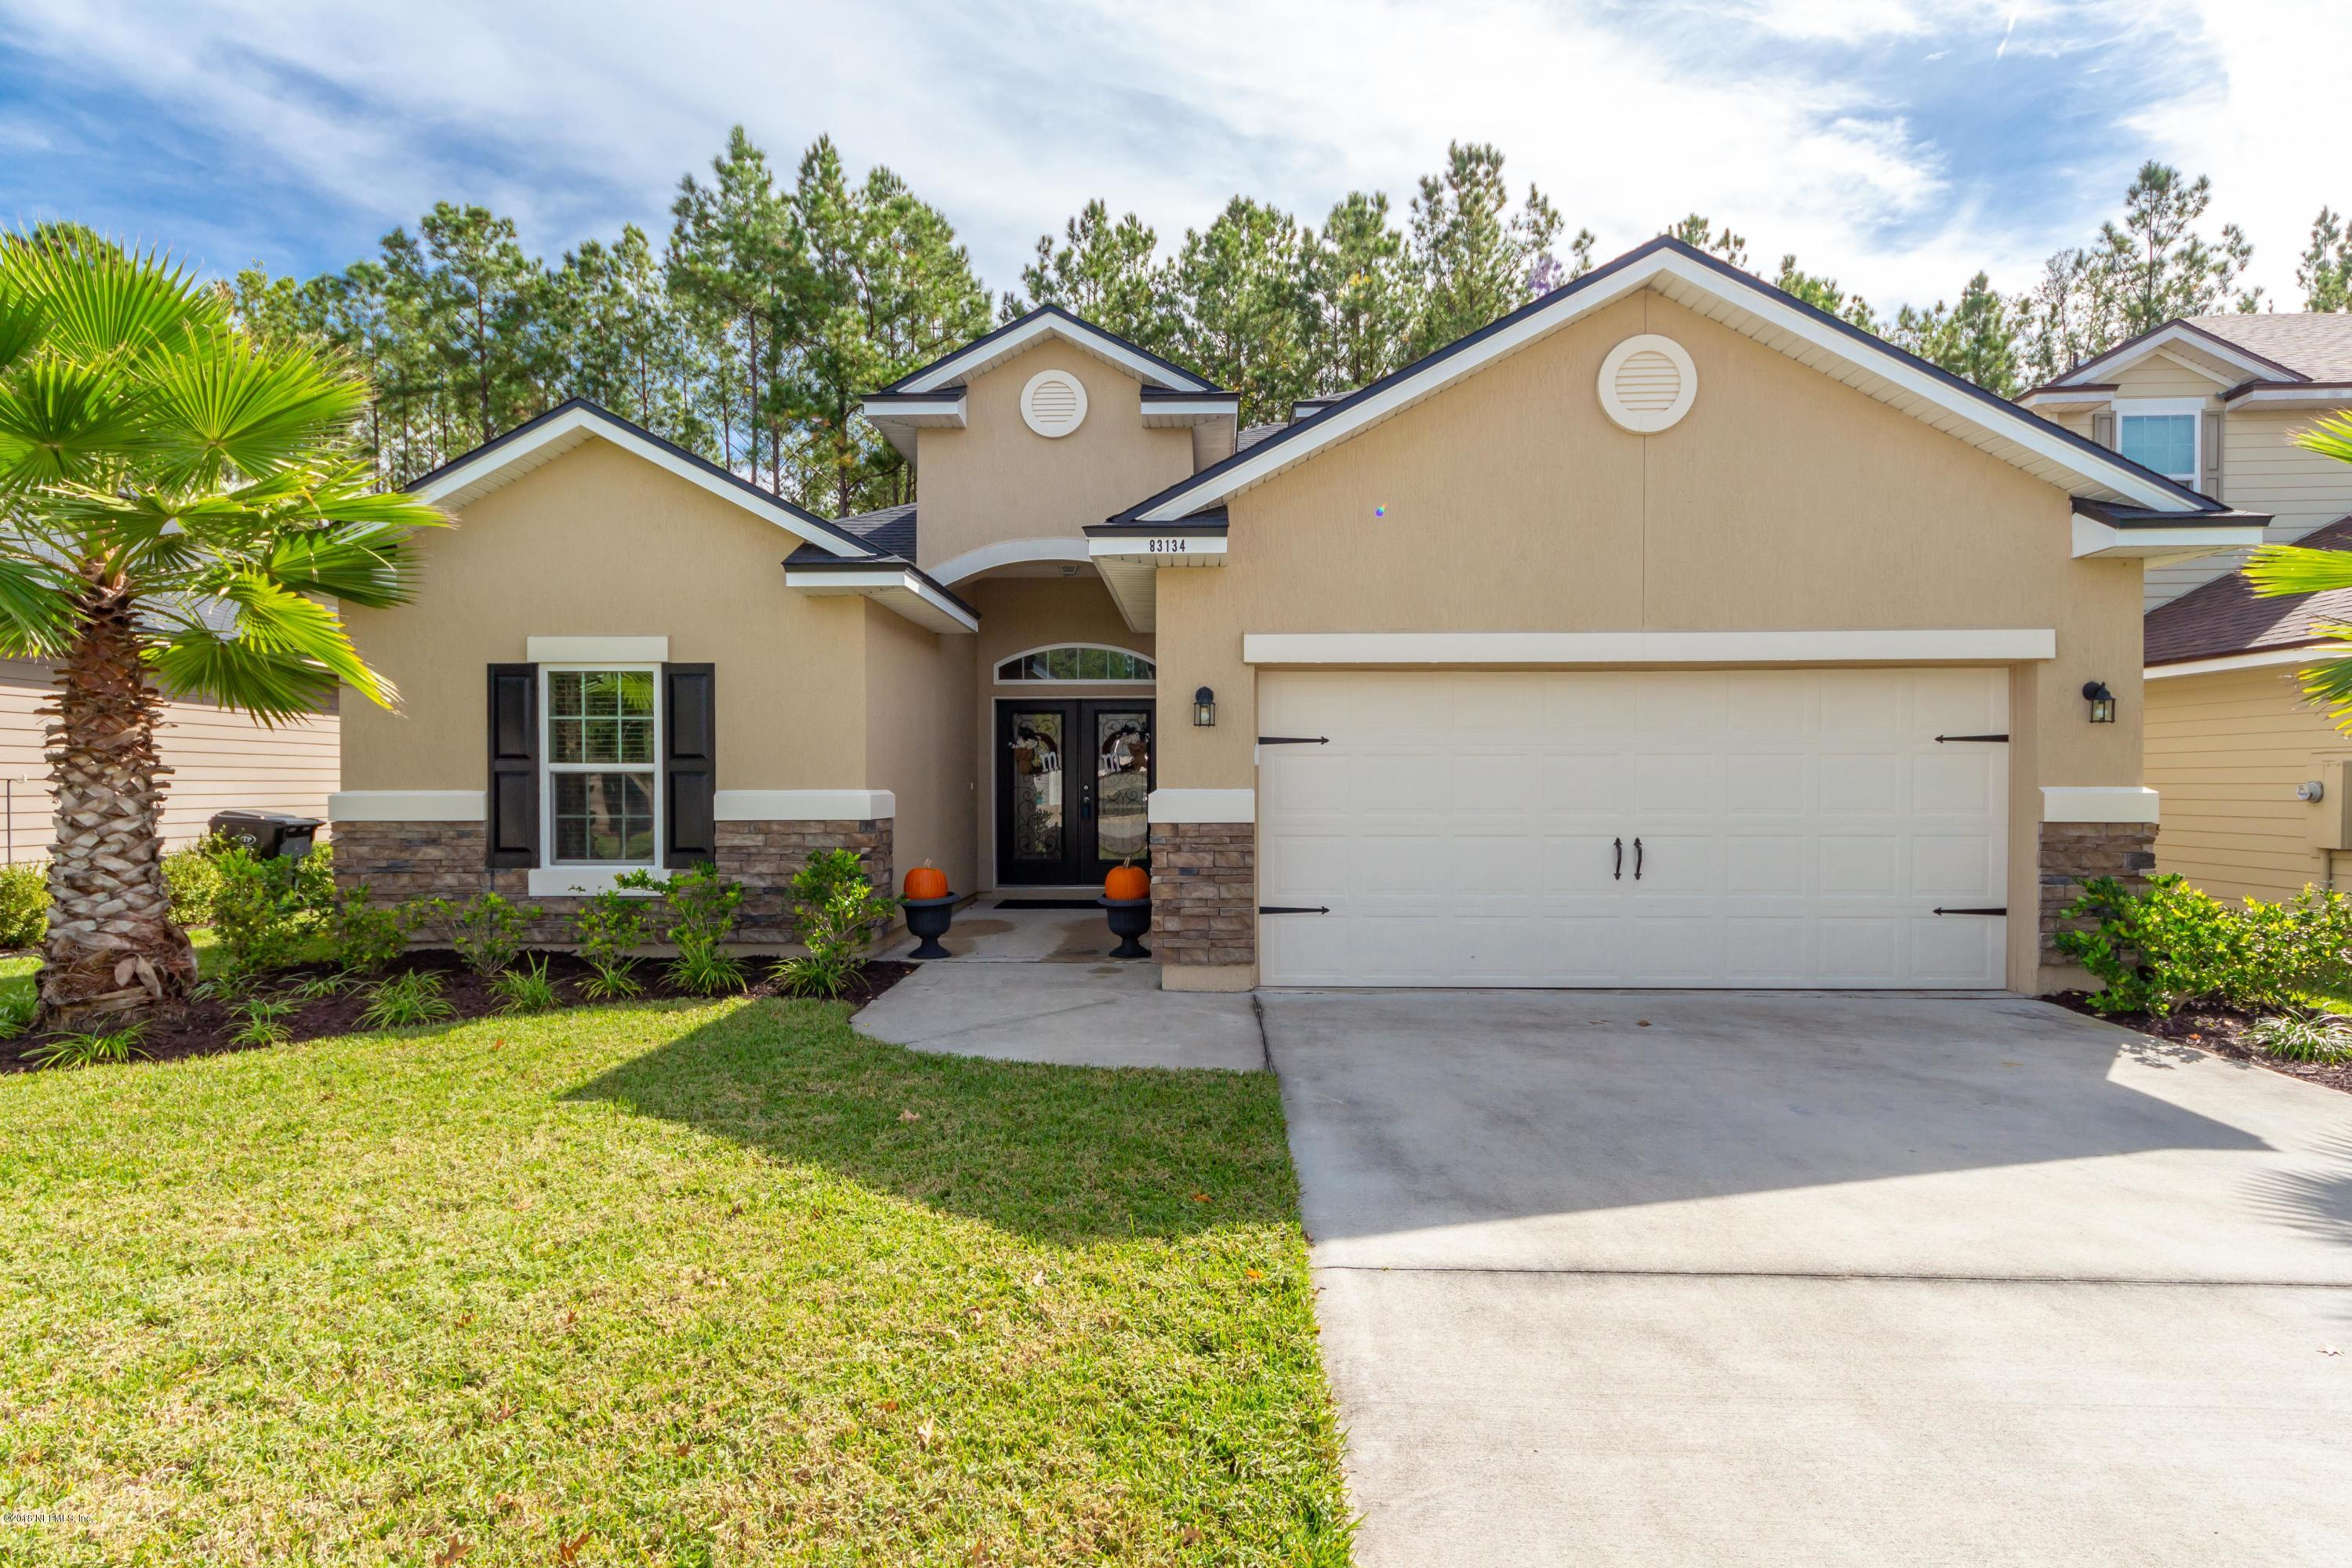 83134 PURPLE MARTIN, YULEE, FLORIDA 32097, 4 Bedrooms Bedrooms, ,3 BathroomsBathrooms,Residential - single family,For sale,PURPLE MARTIN,965276